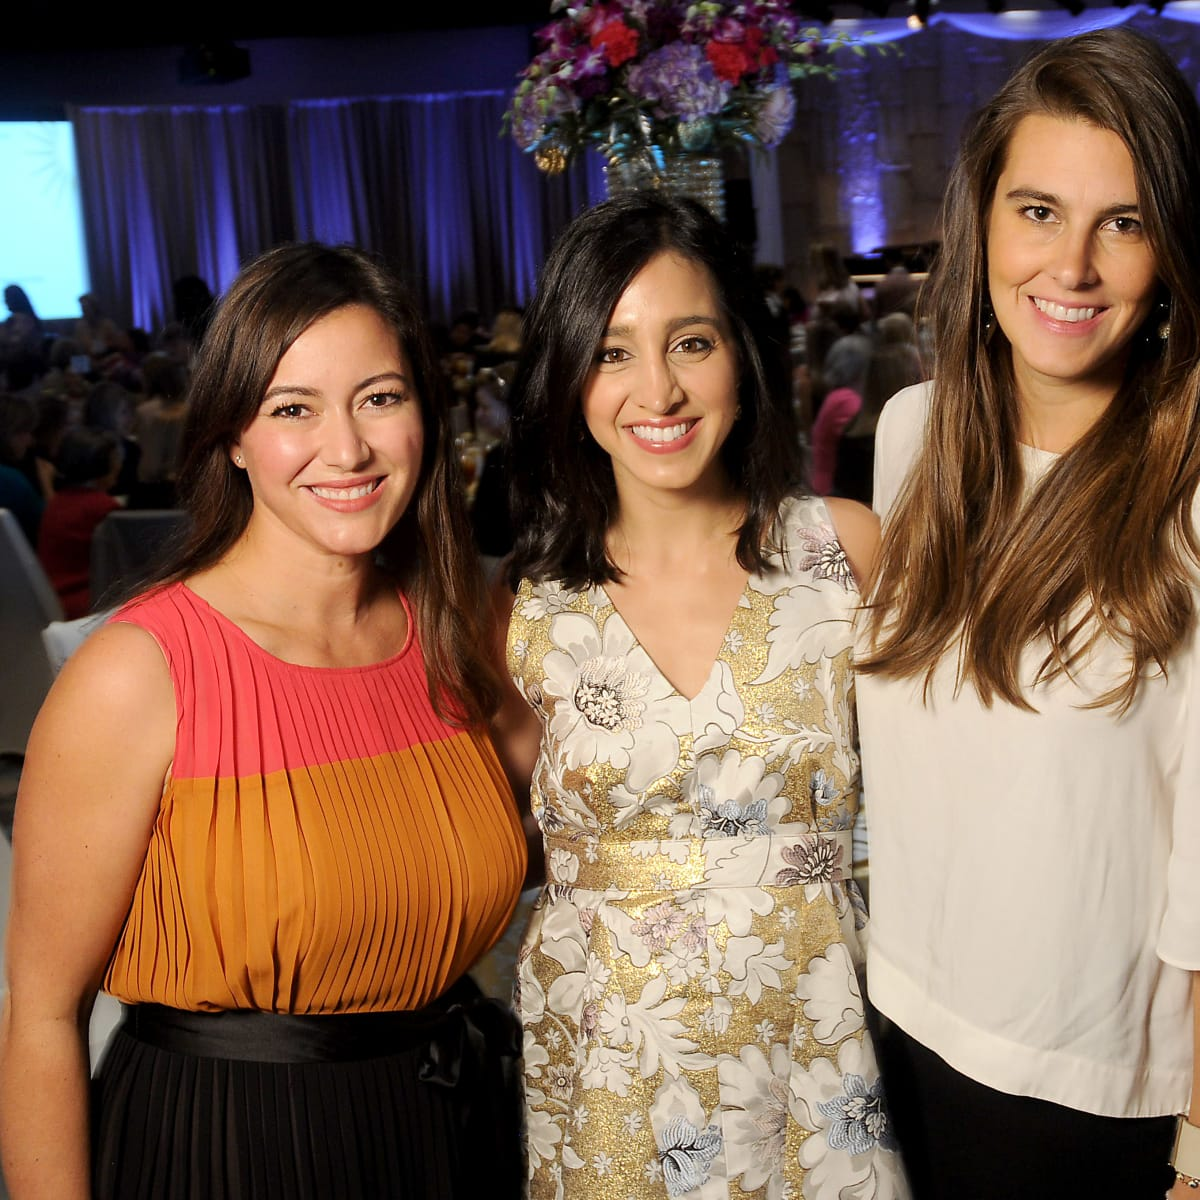 Memorial Hermann Razzle Dazzle luncheon, Jayne Johnston, Holly Radom, Kathryn Swain